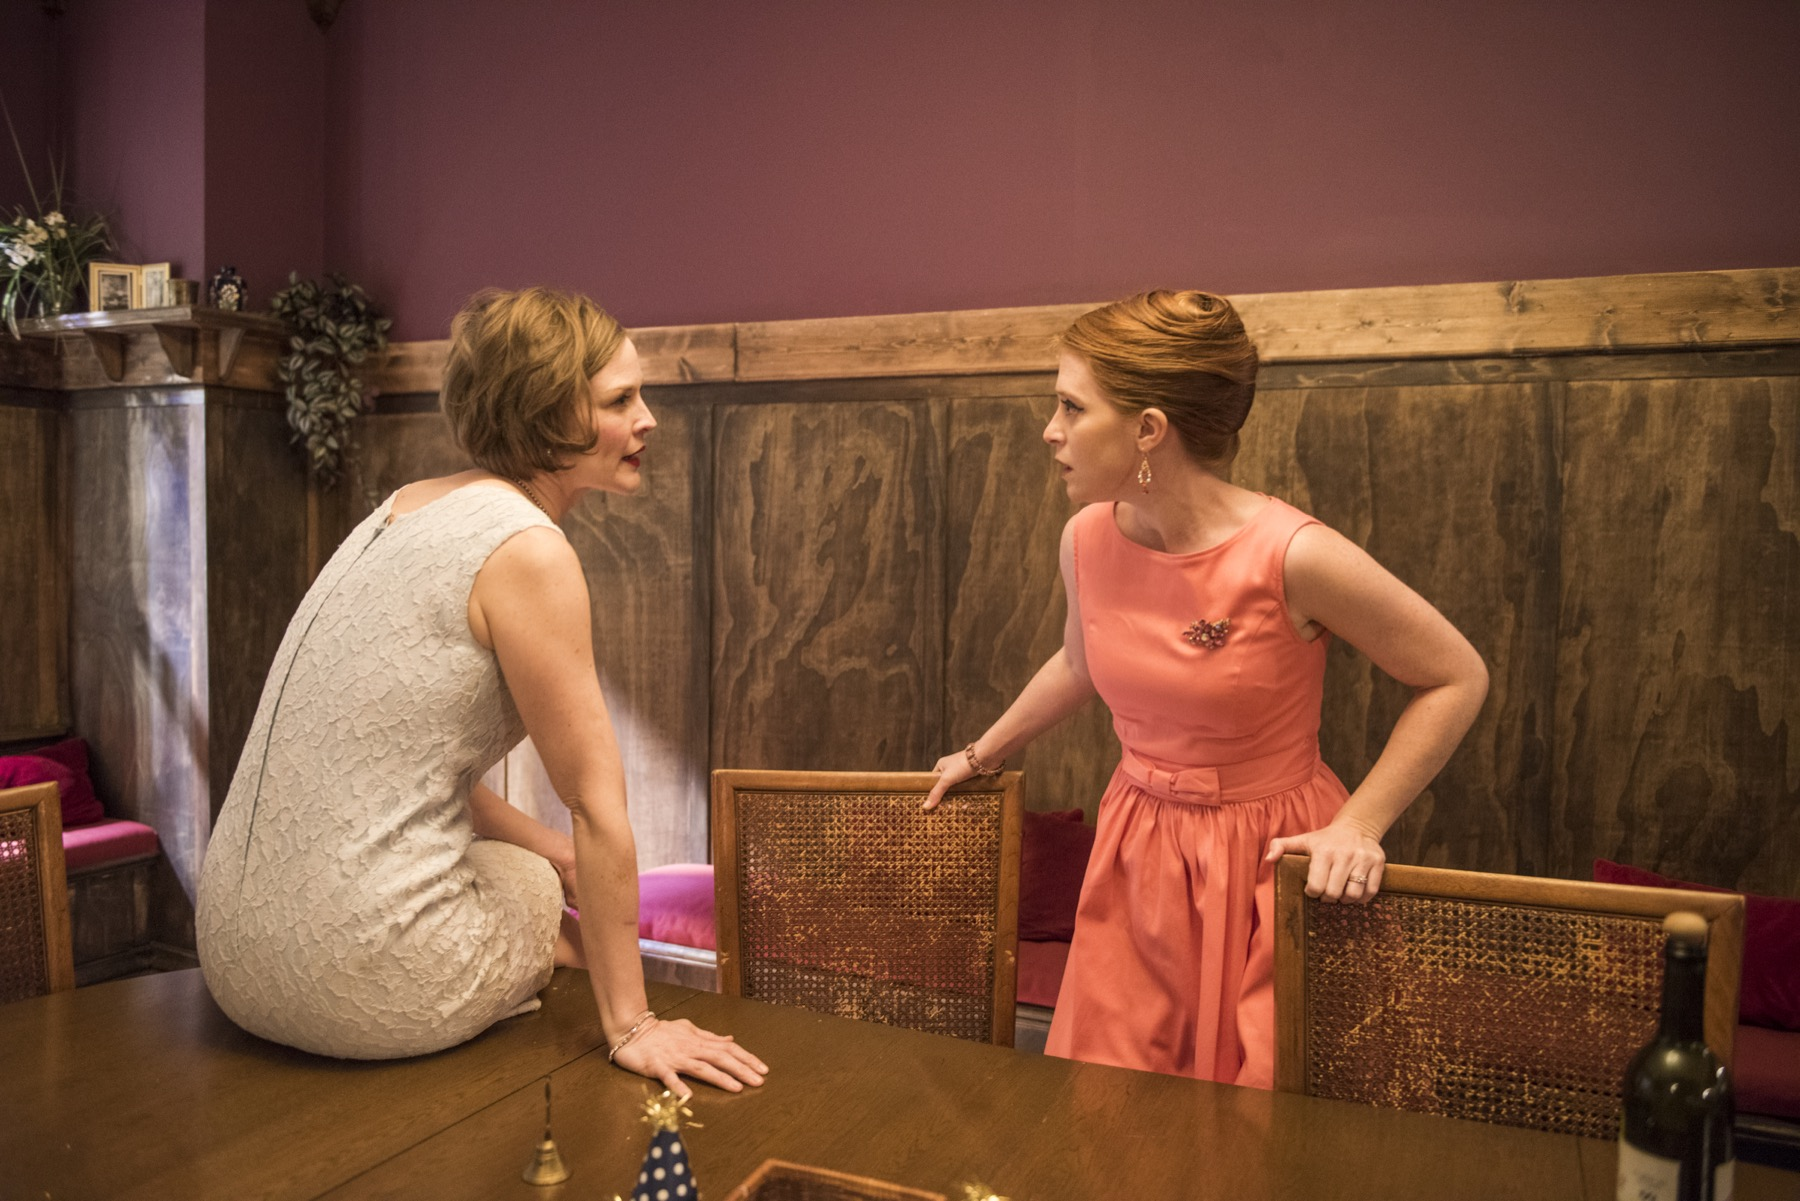 Erin Barlow and Sarah Grant in Southern Gothic at Windy City Playhouse South